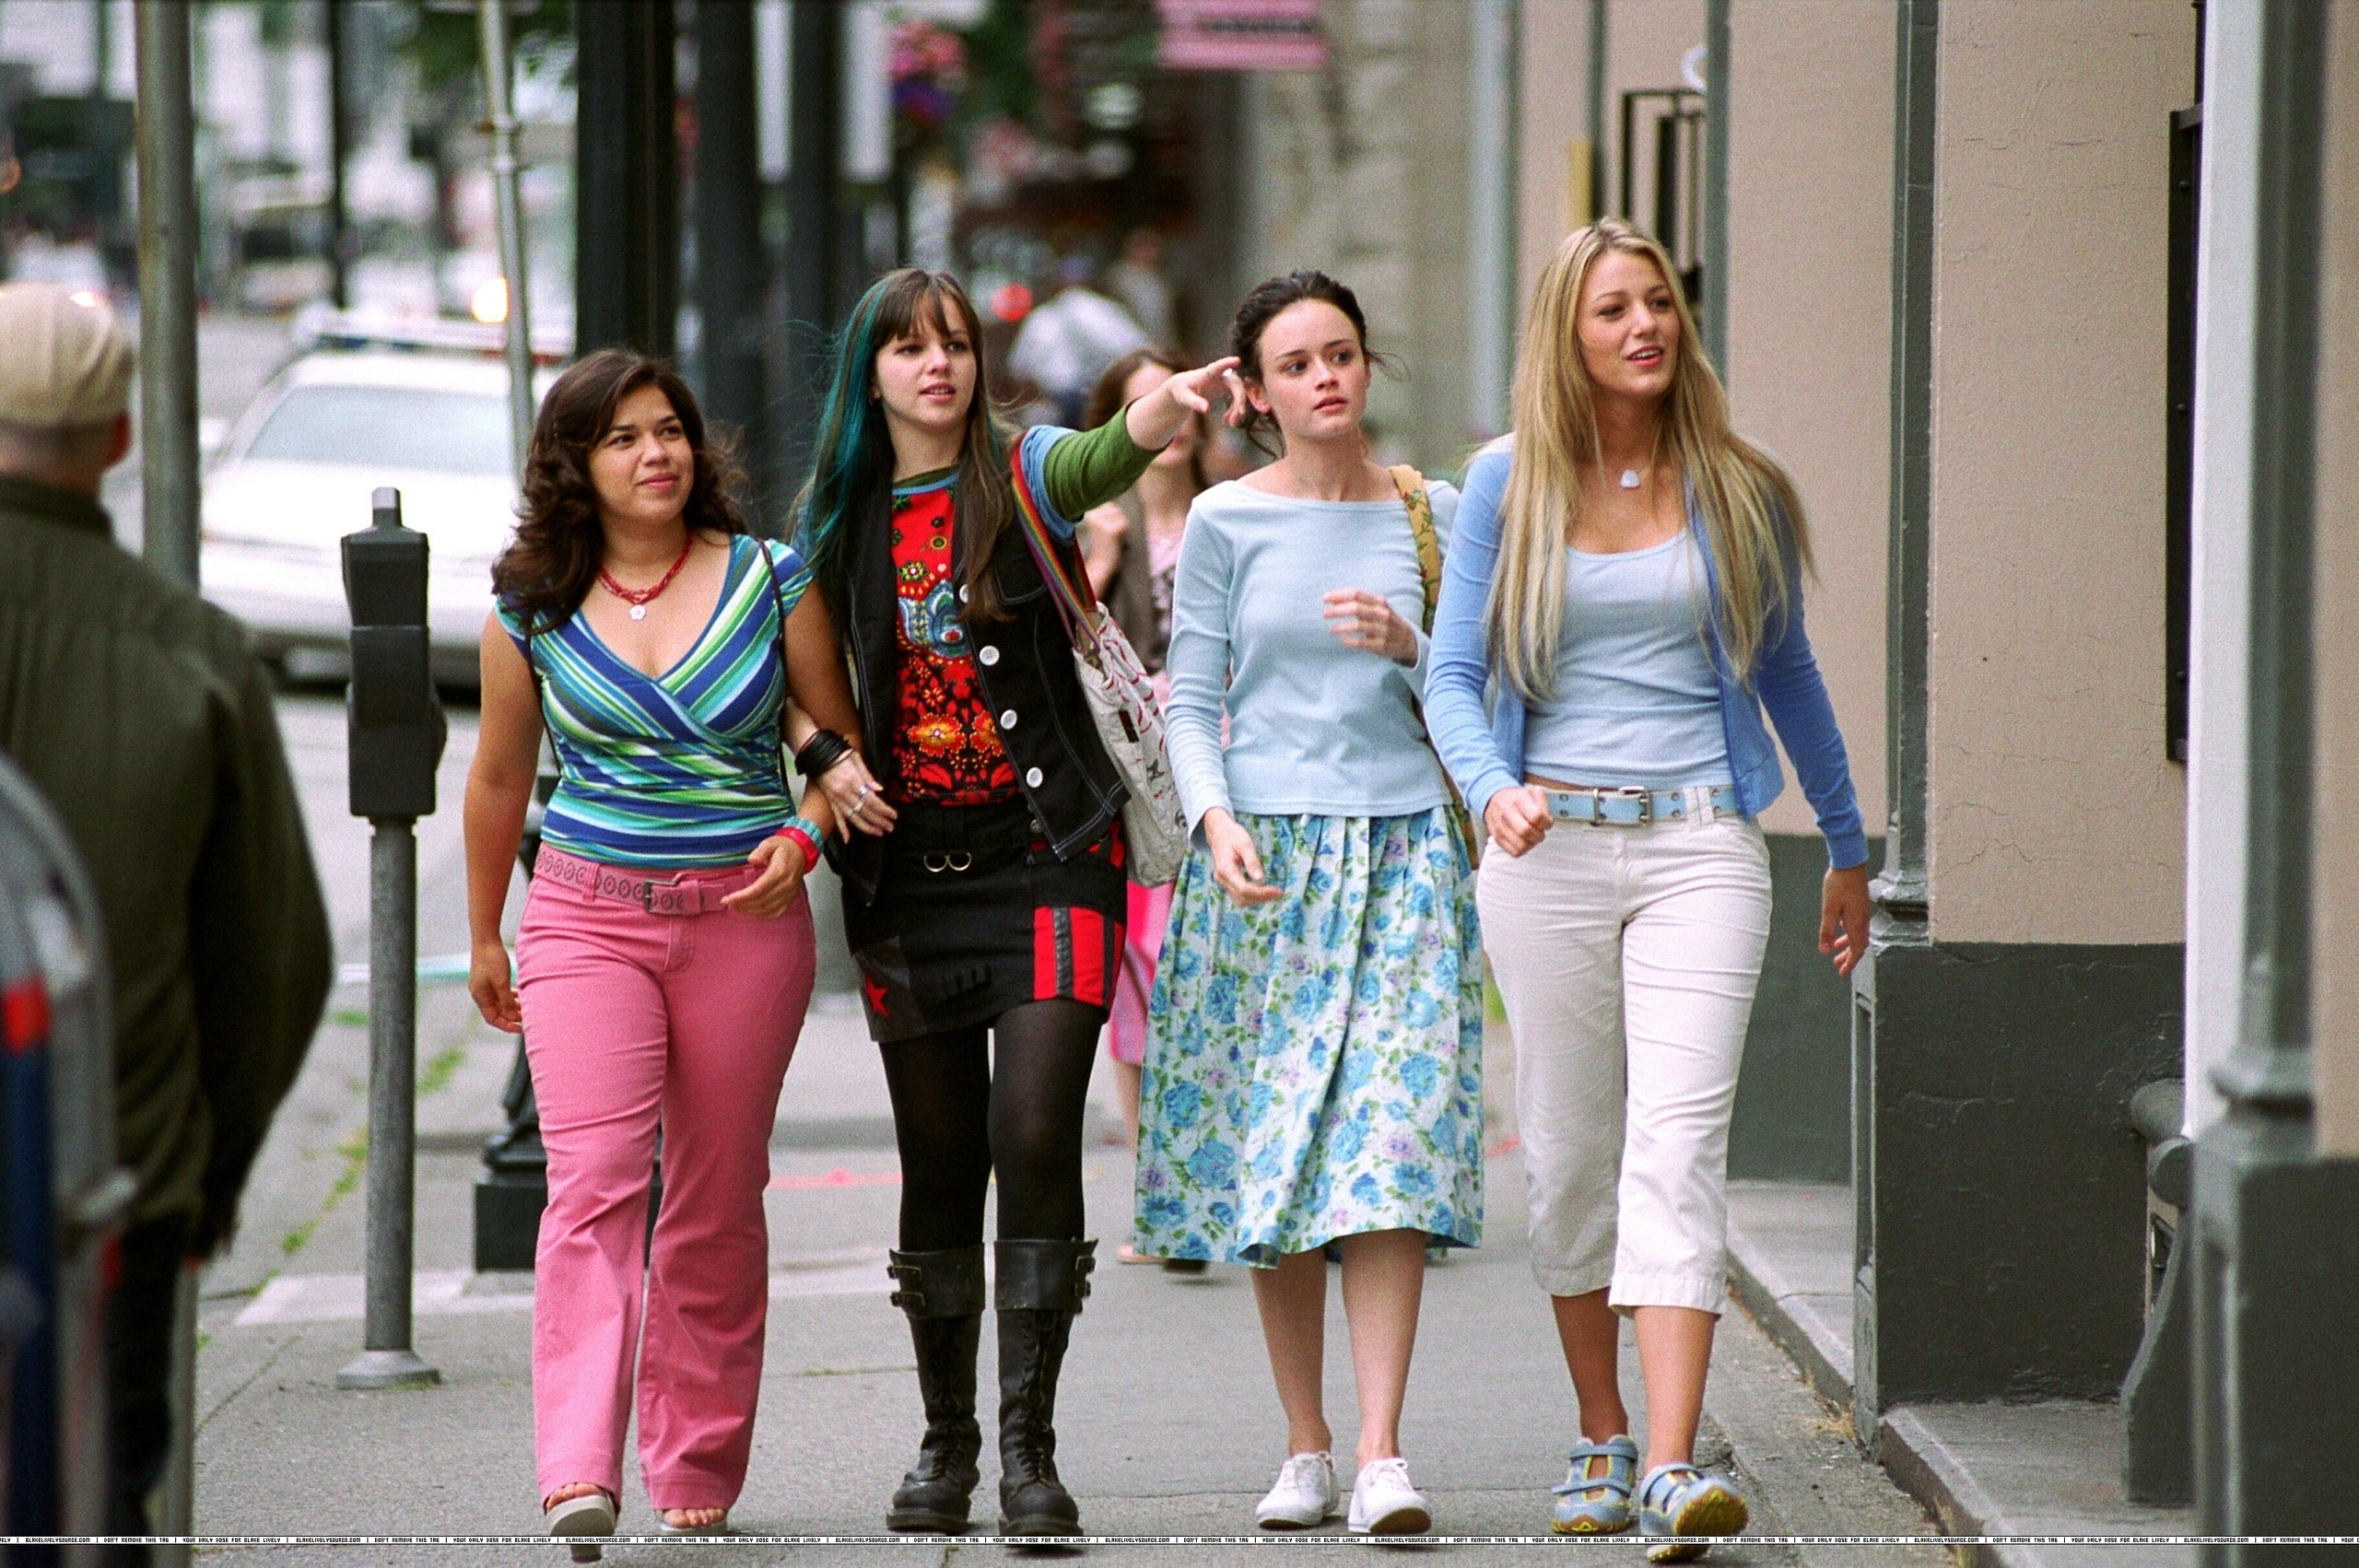 Sisterhood Of The Traveling Pants Quotes About Friendship 7 Possible 'sisterhood Of The Traveling Pants 3' Plot Points